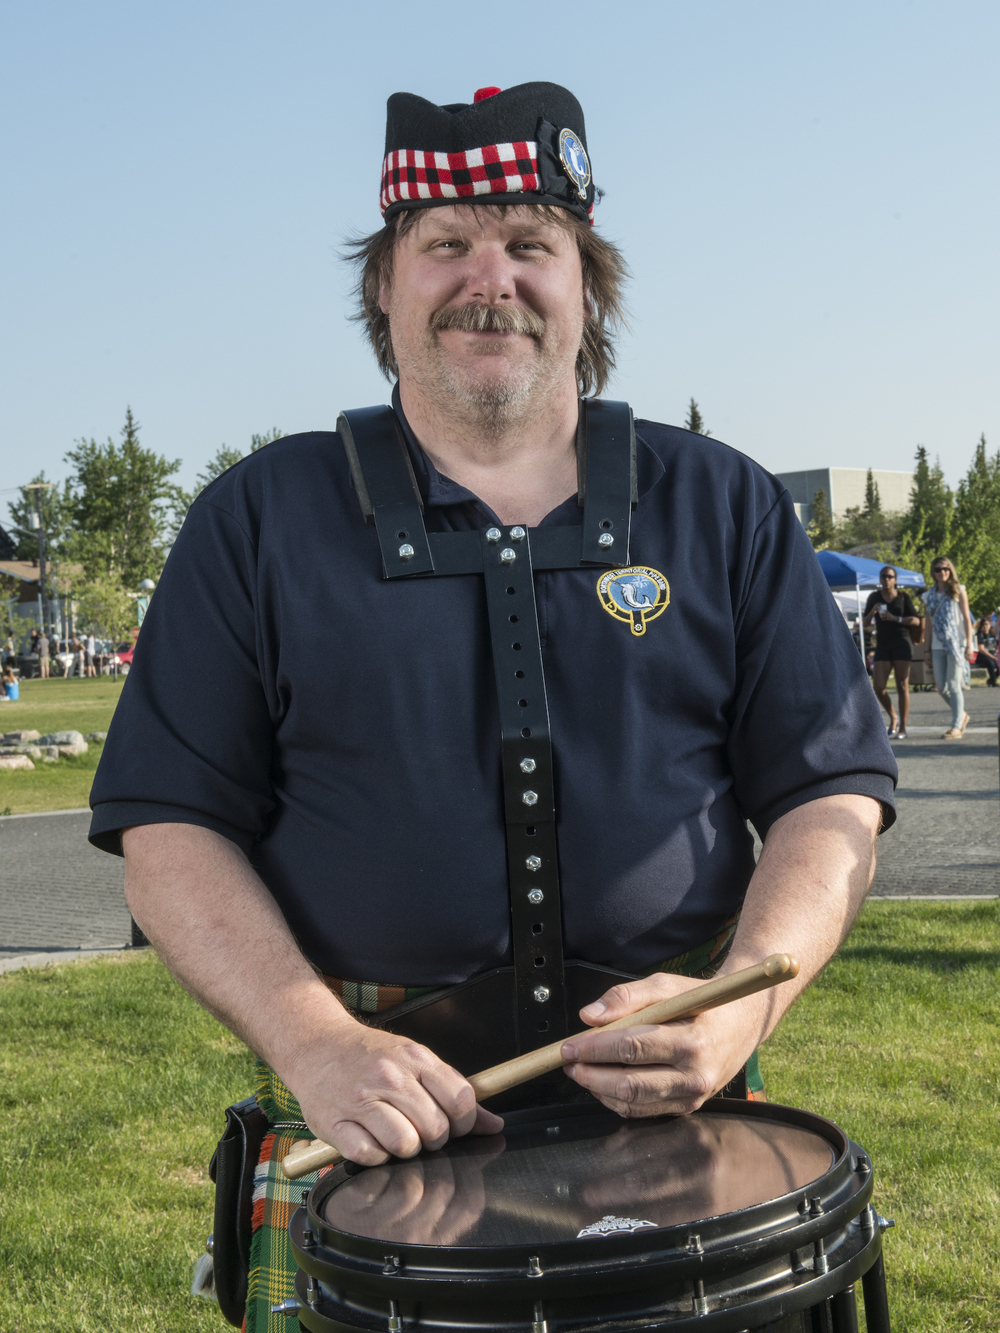 Drummer, NWT Pipe Band